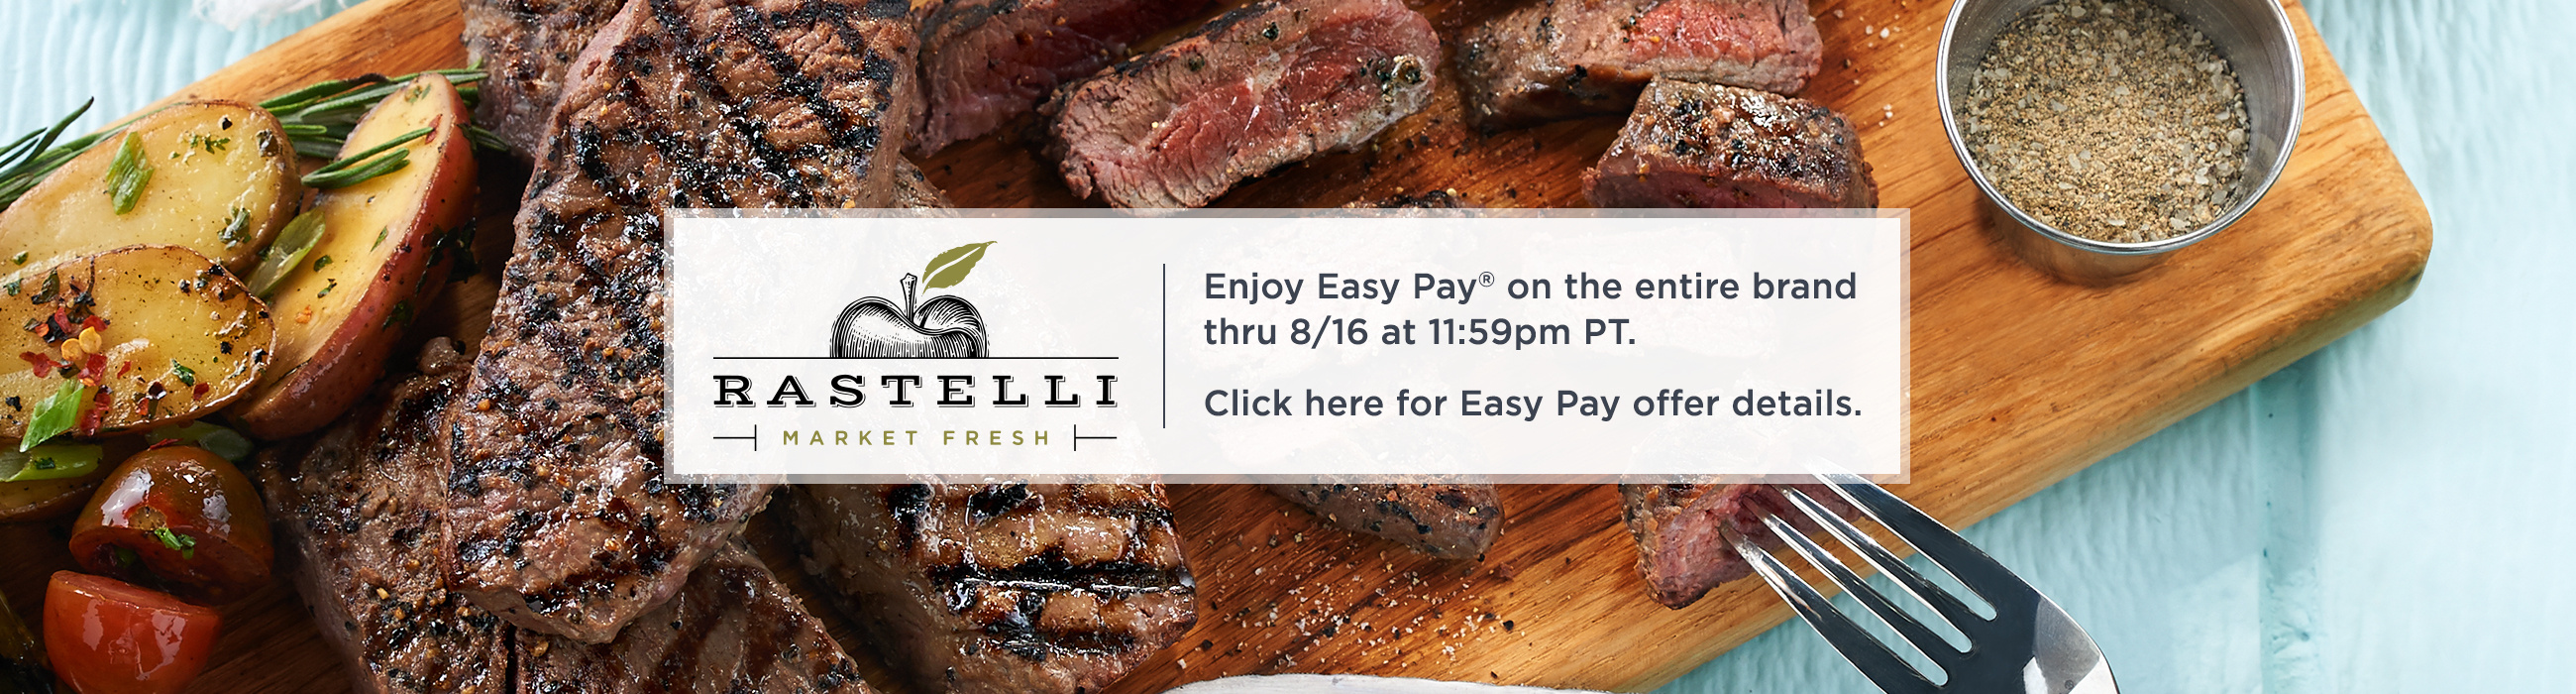 Rastelli Market Fresh. Enjoy Easy Pay® on the entire brand thru 8/16 at 11:59pm PT.  Click here for Easy Pay offer details.